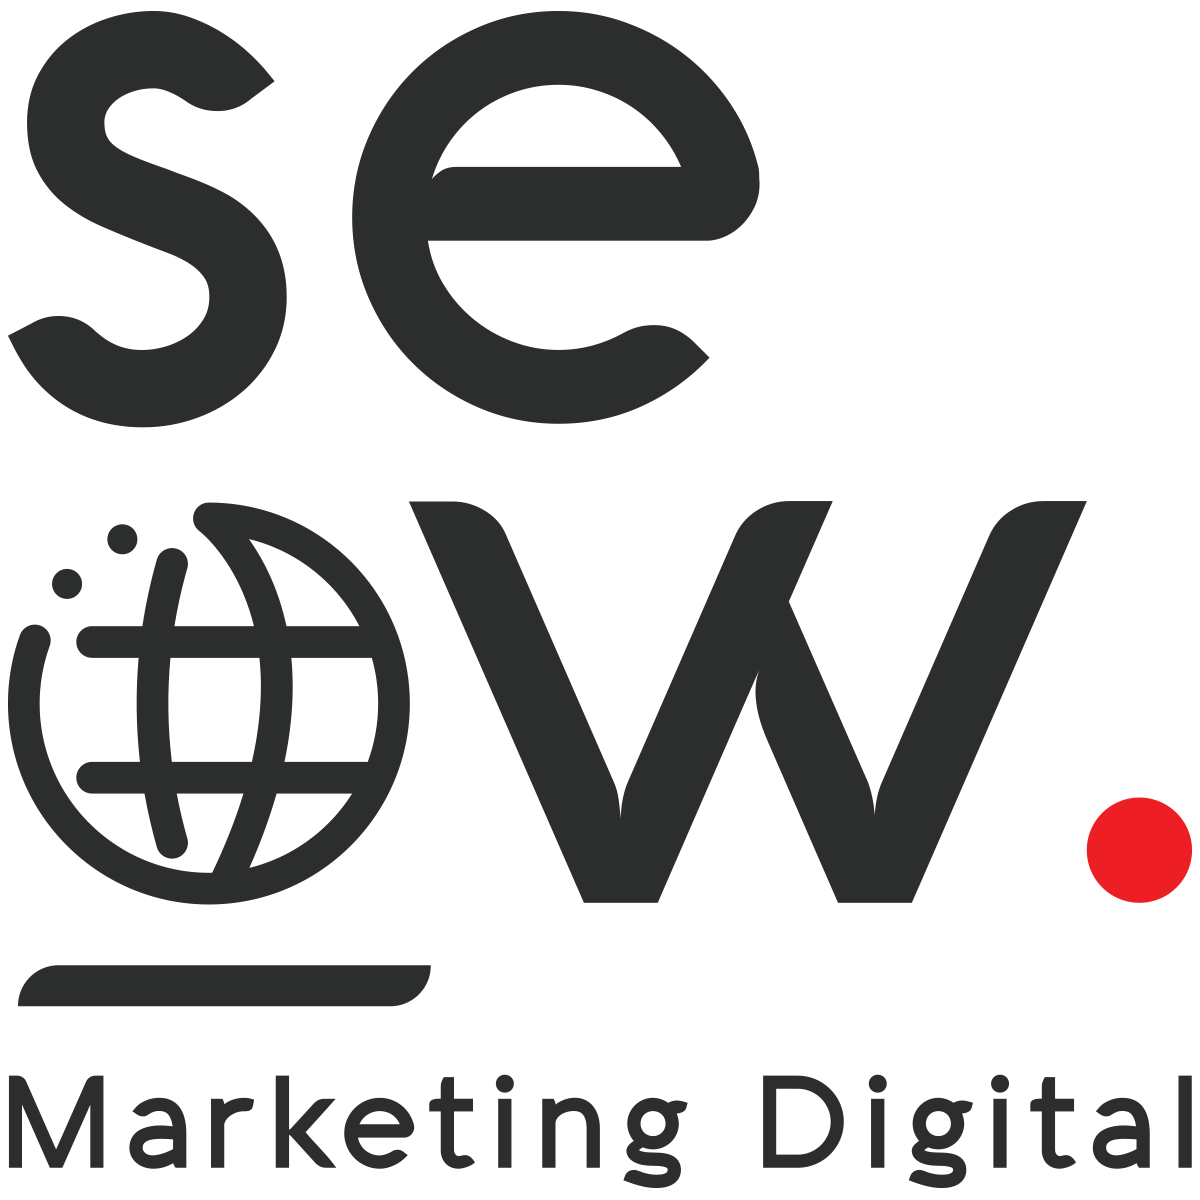 SEOW Marketing Digital